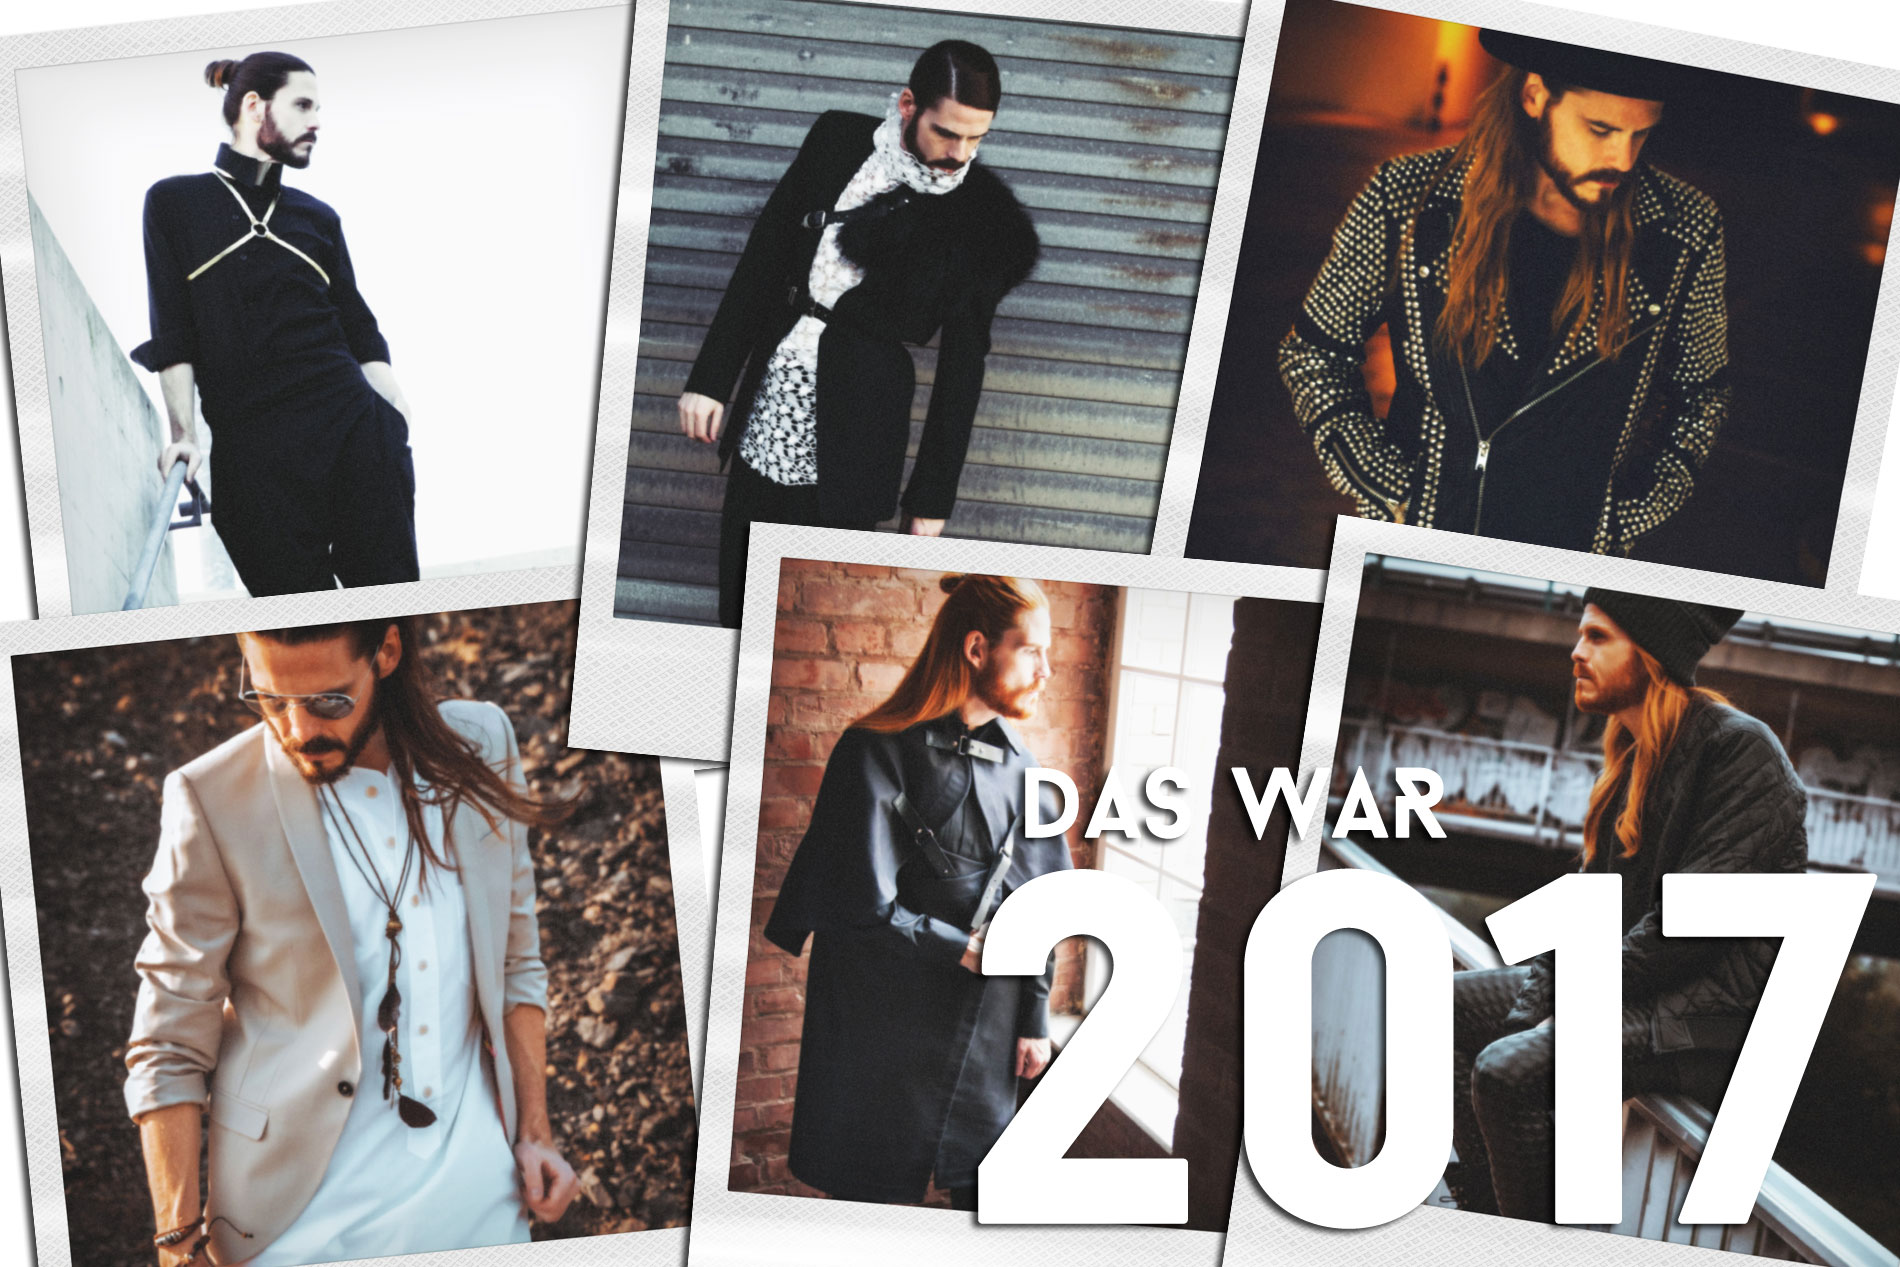 Malefashionblog-Maennermode-Style-Outfit-Rueckblick-Malemodel-Preview